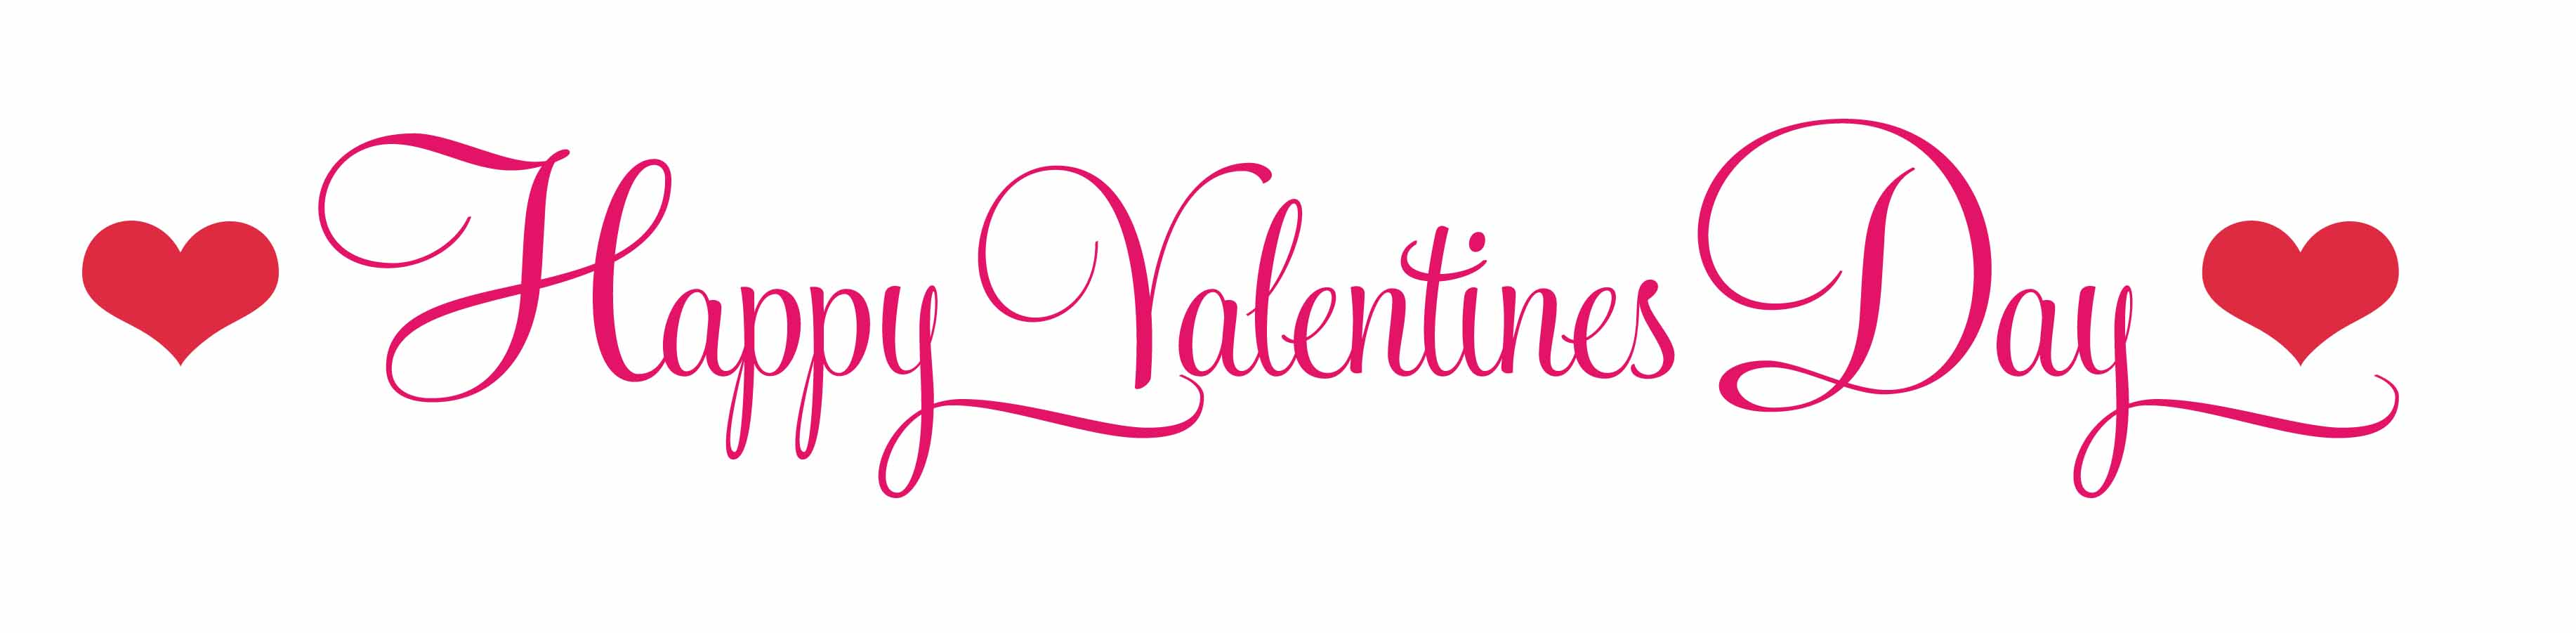 Happy Valentine's Day Mom from Teleflora Florist! - Mom Blog Society